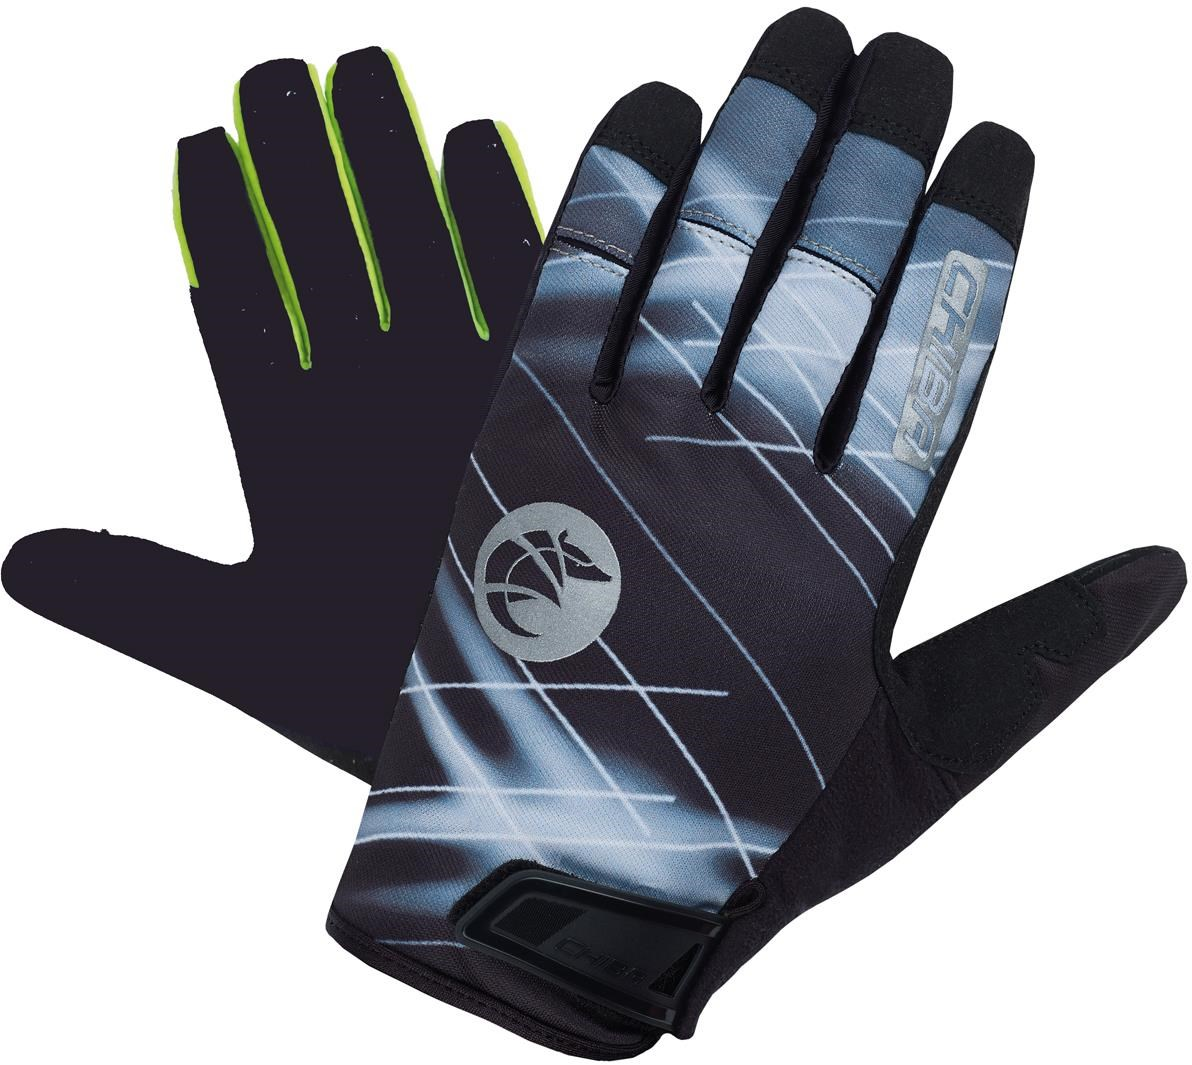 Chiba Twister Long Finger Cycling MTB Gloves   Gloves